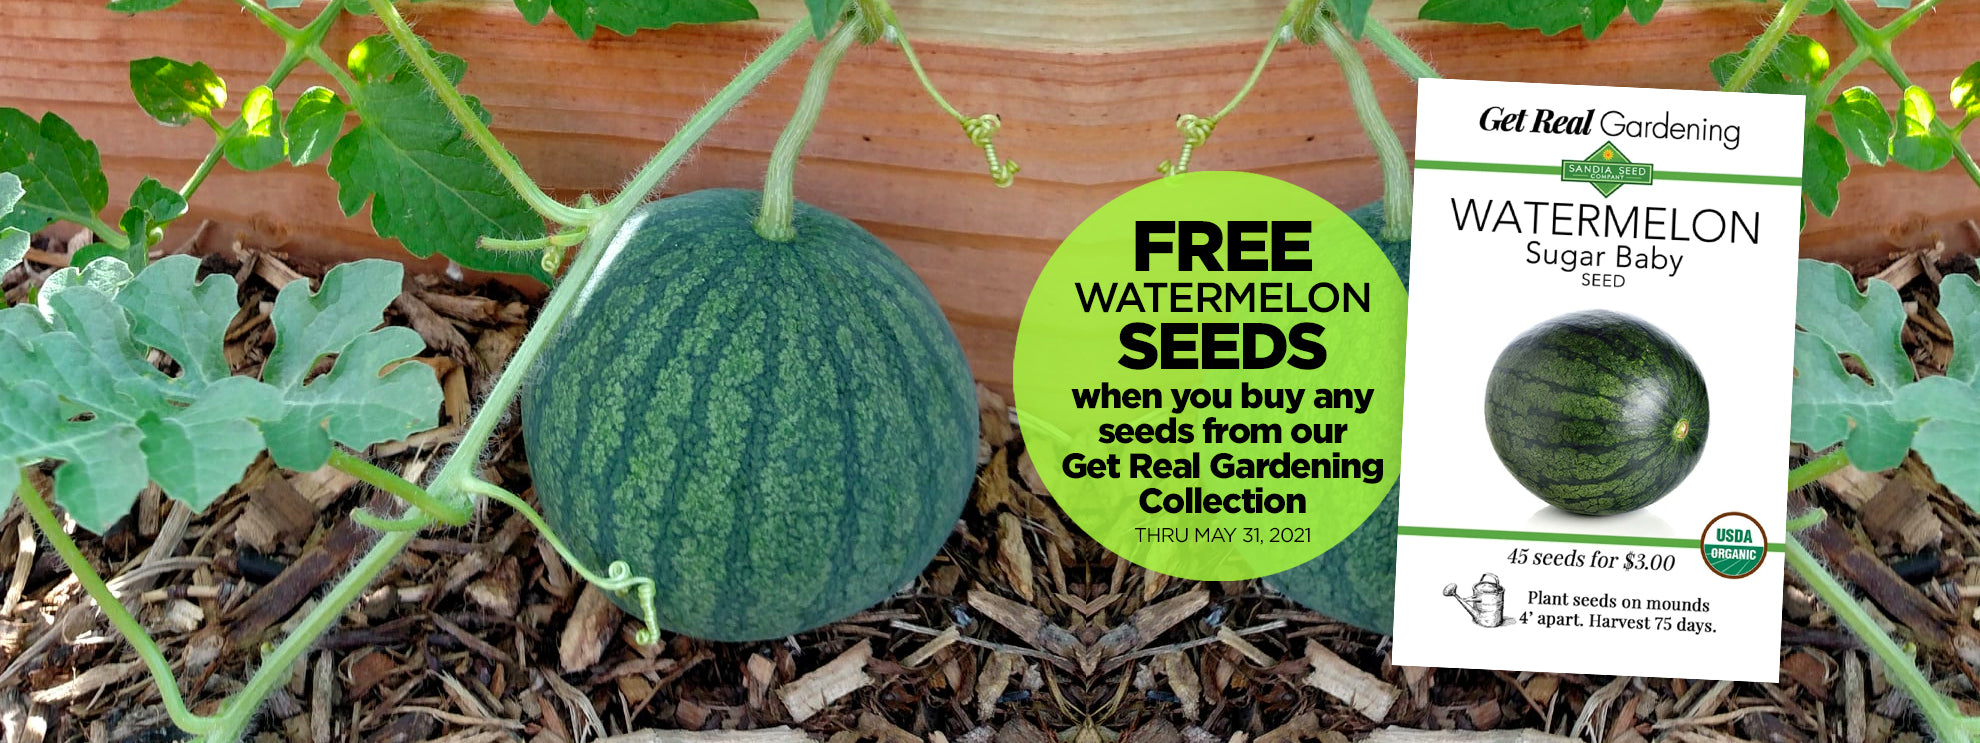 Free Seeds - Free Watermelon Seeds from Sandiaseed.com when you buy any of our Real Good Gardening Collection seeds!